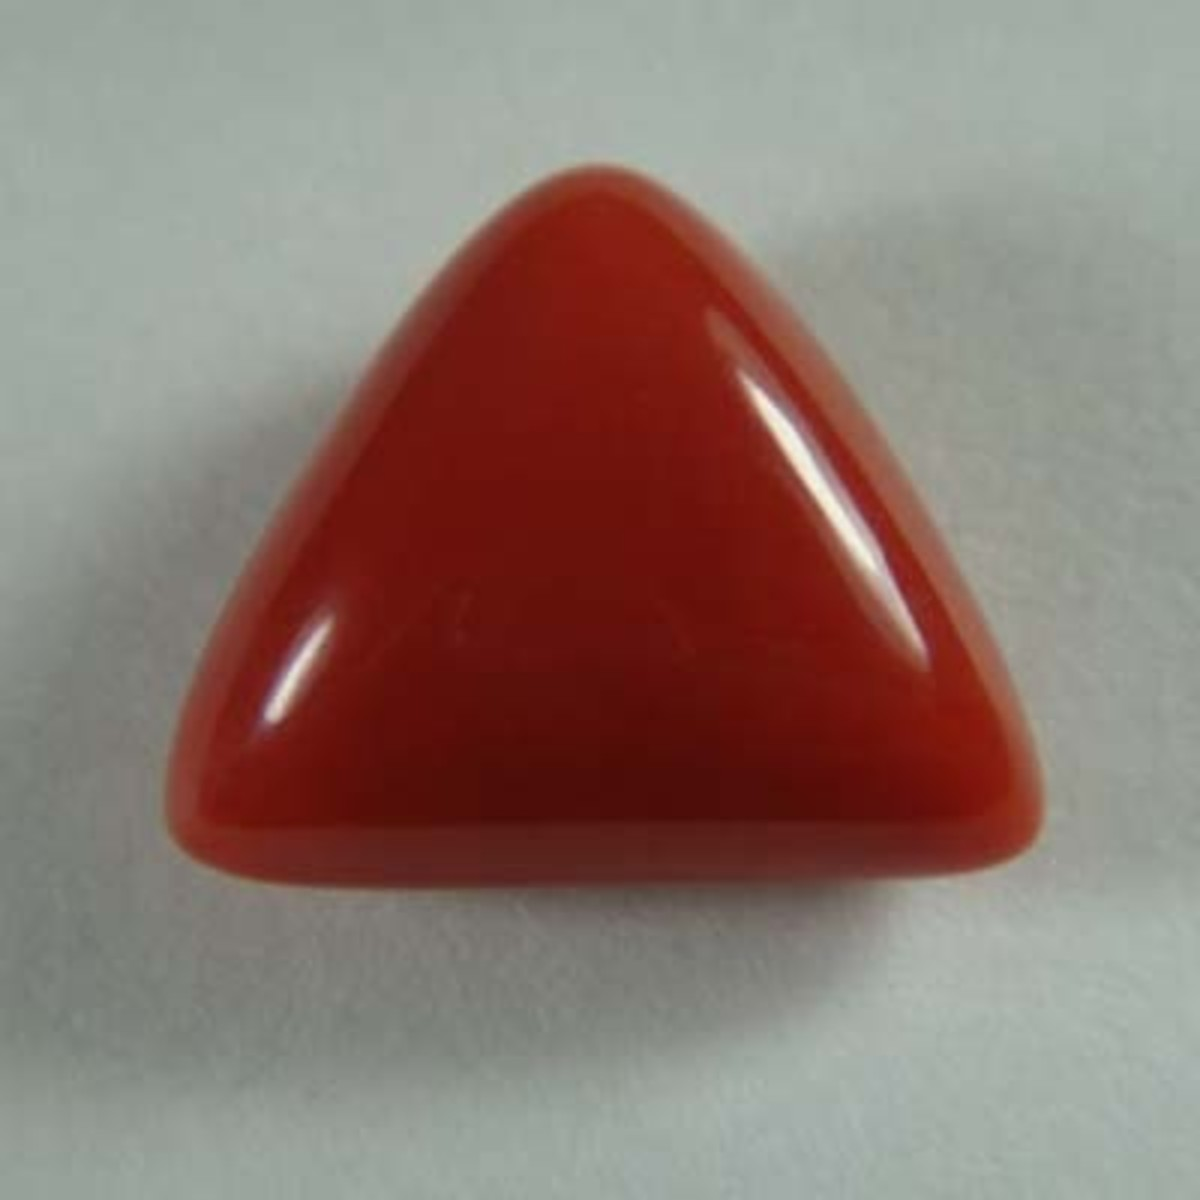 Italian red coral is considered the finest quality coral and is believed to give the wearer courage and strength.